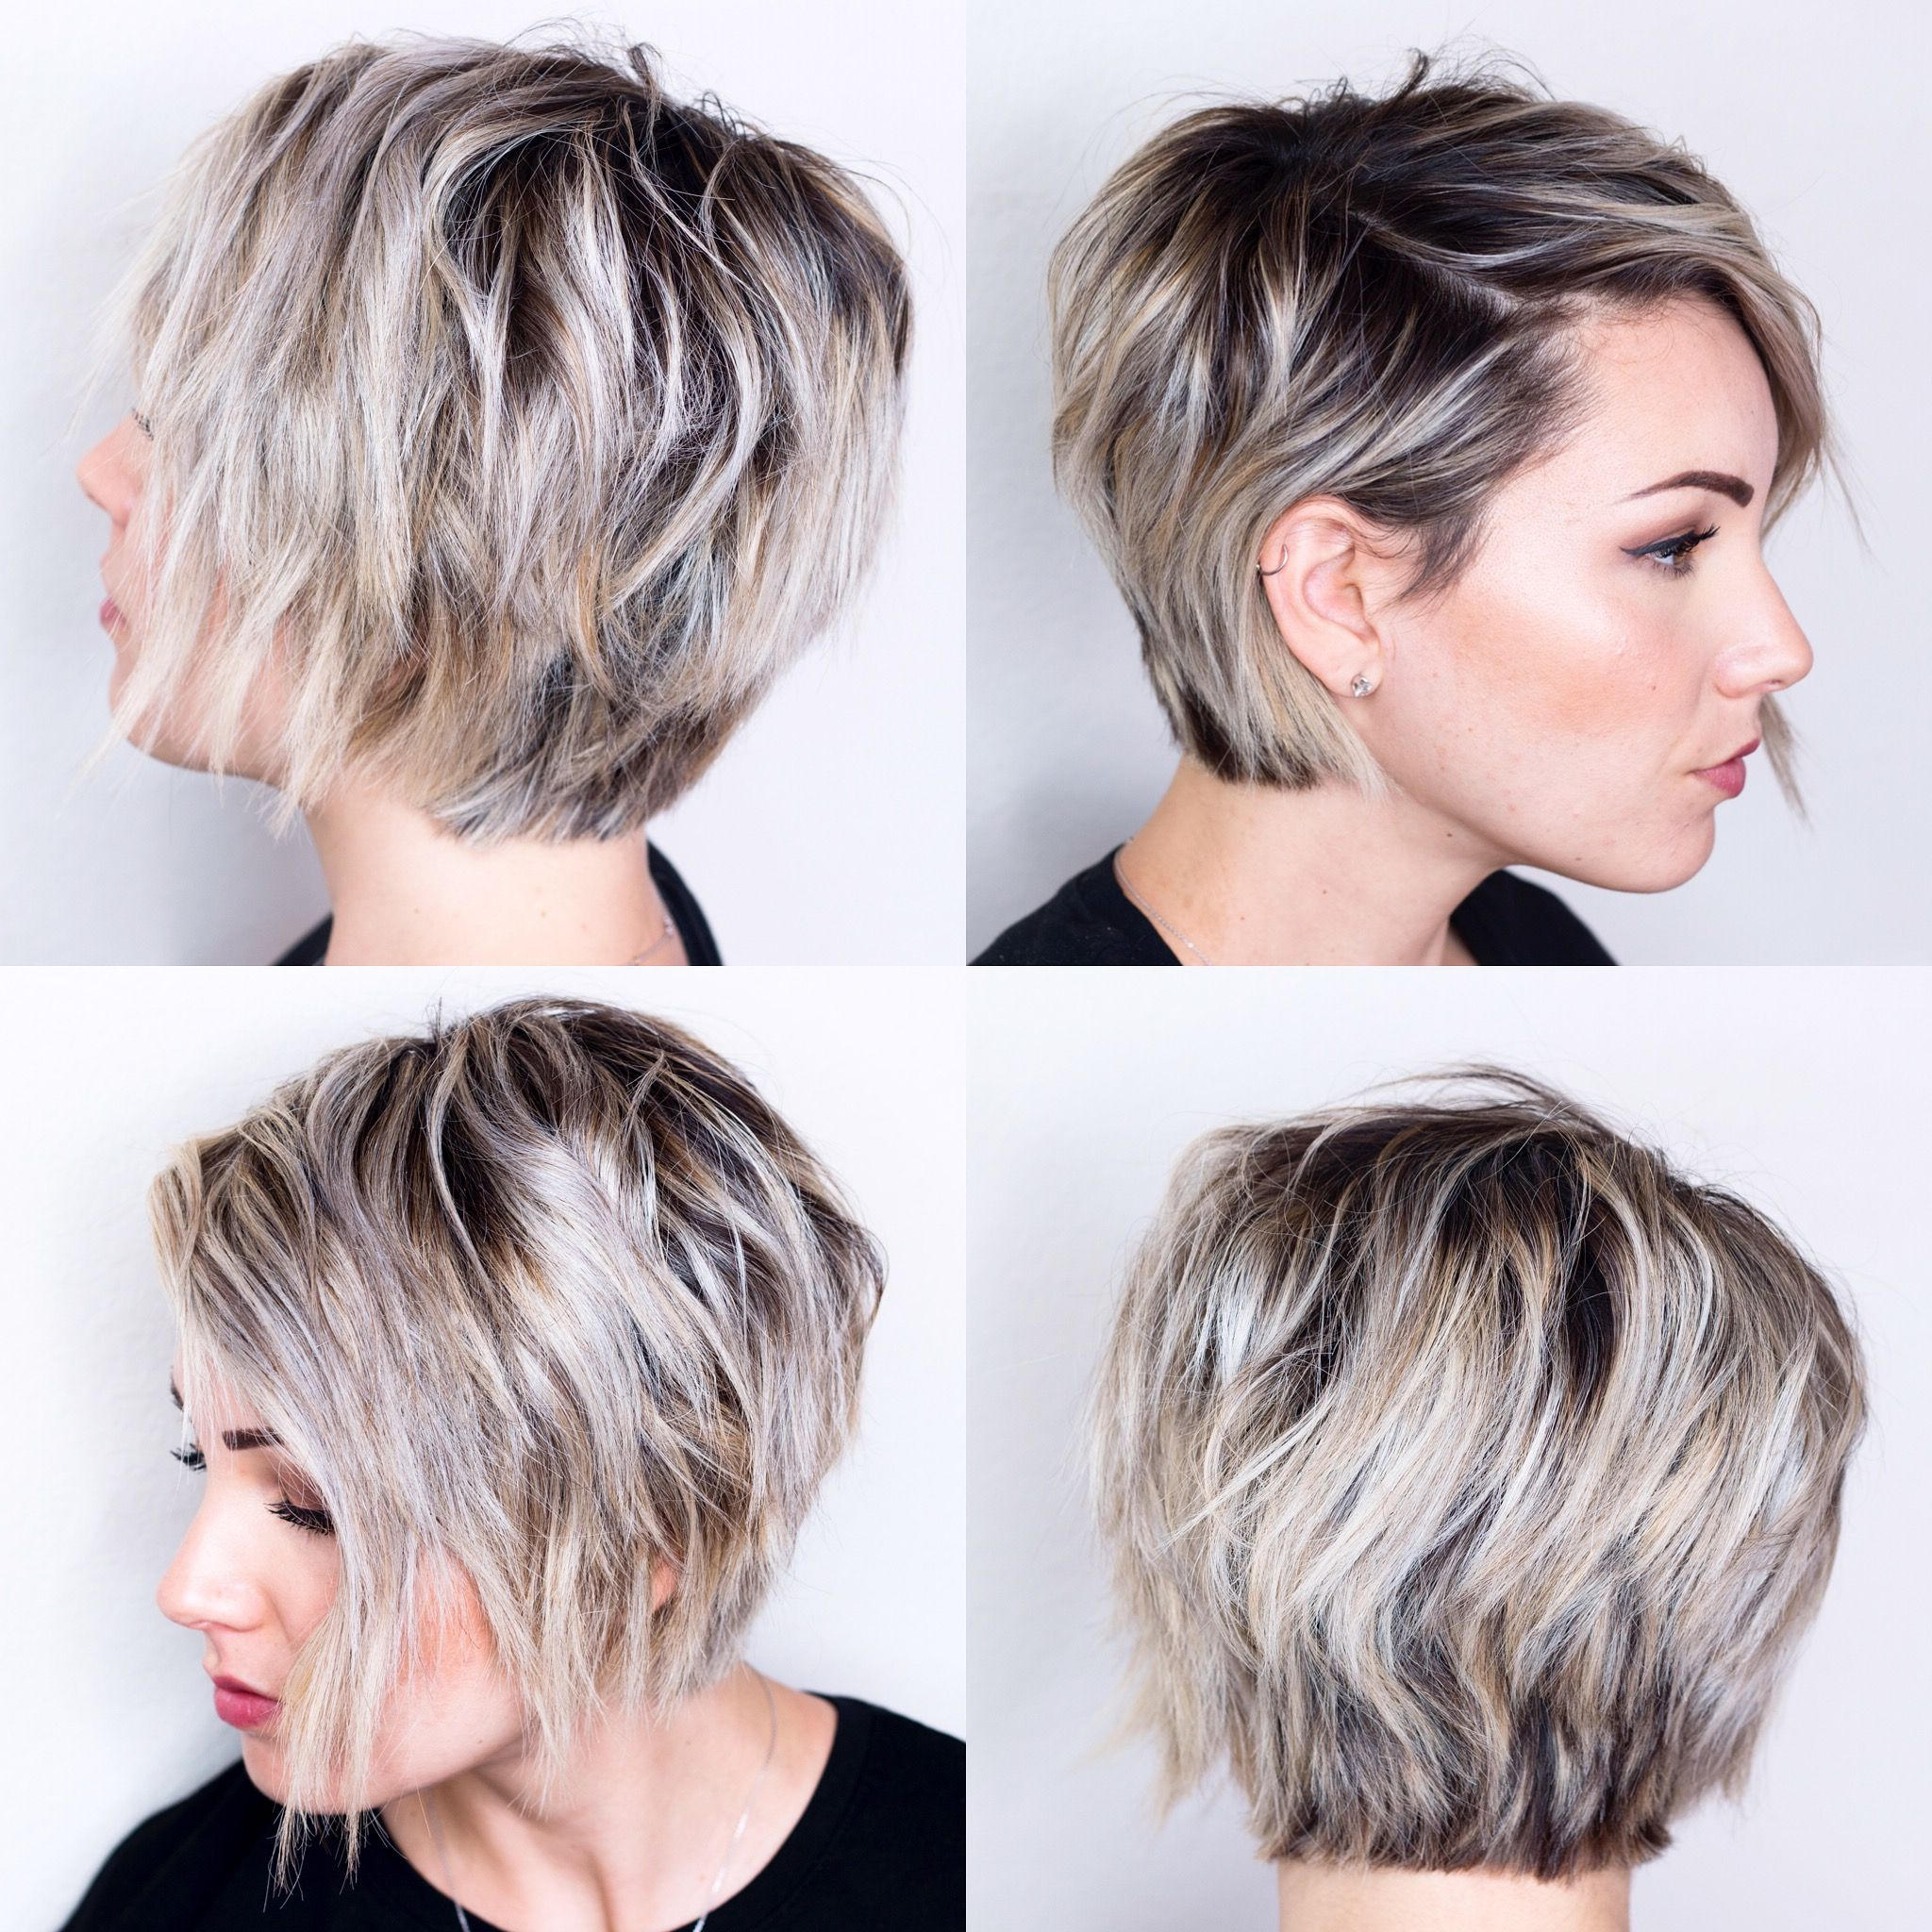 360 View Of Short Hair | H A I R In 2018 | Pinterest | Short Hair Throughout Short Haircuts For Oblong Face (View 3 of 25)